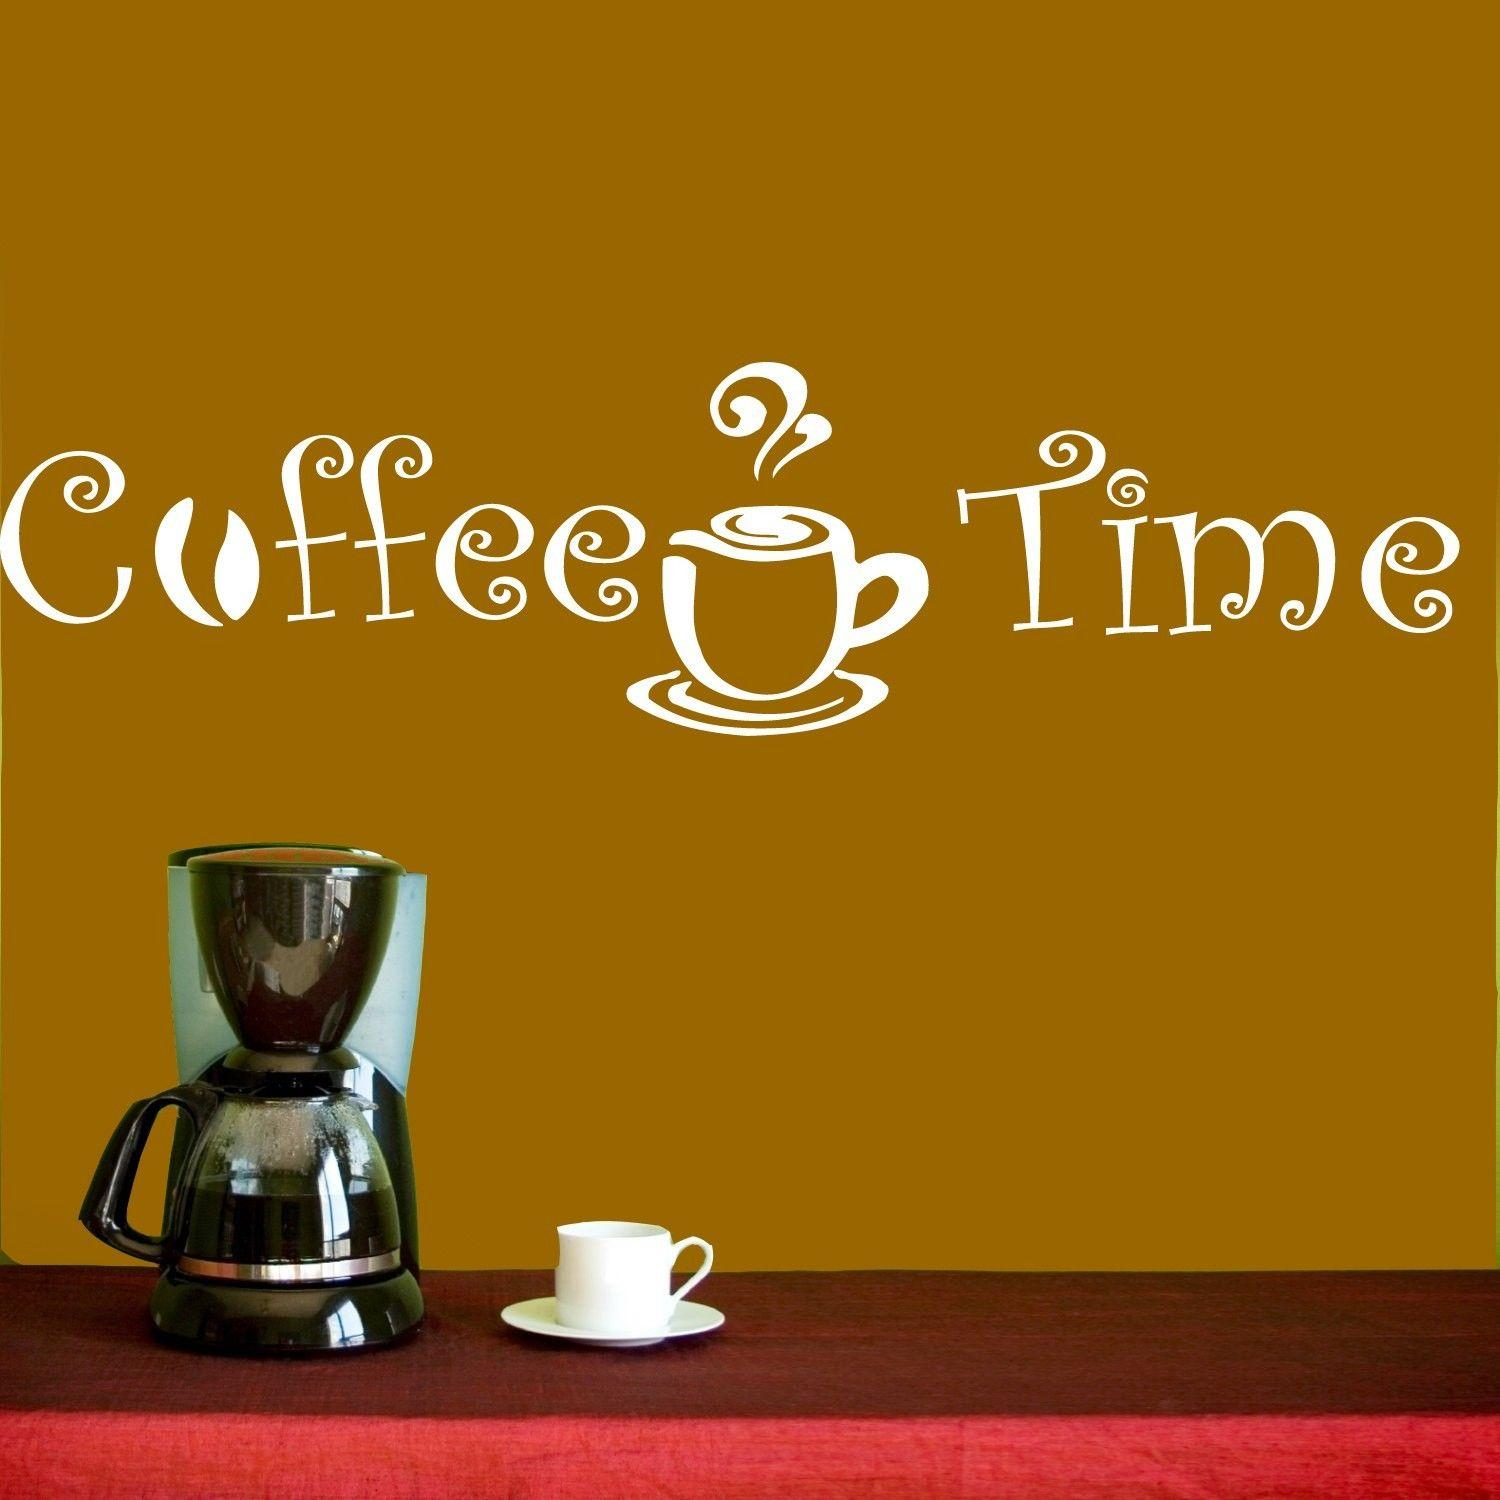 wall decal vinyl sticker coffee shop cafe kitchen quote coffee